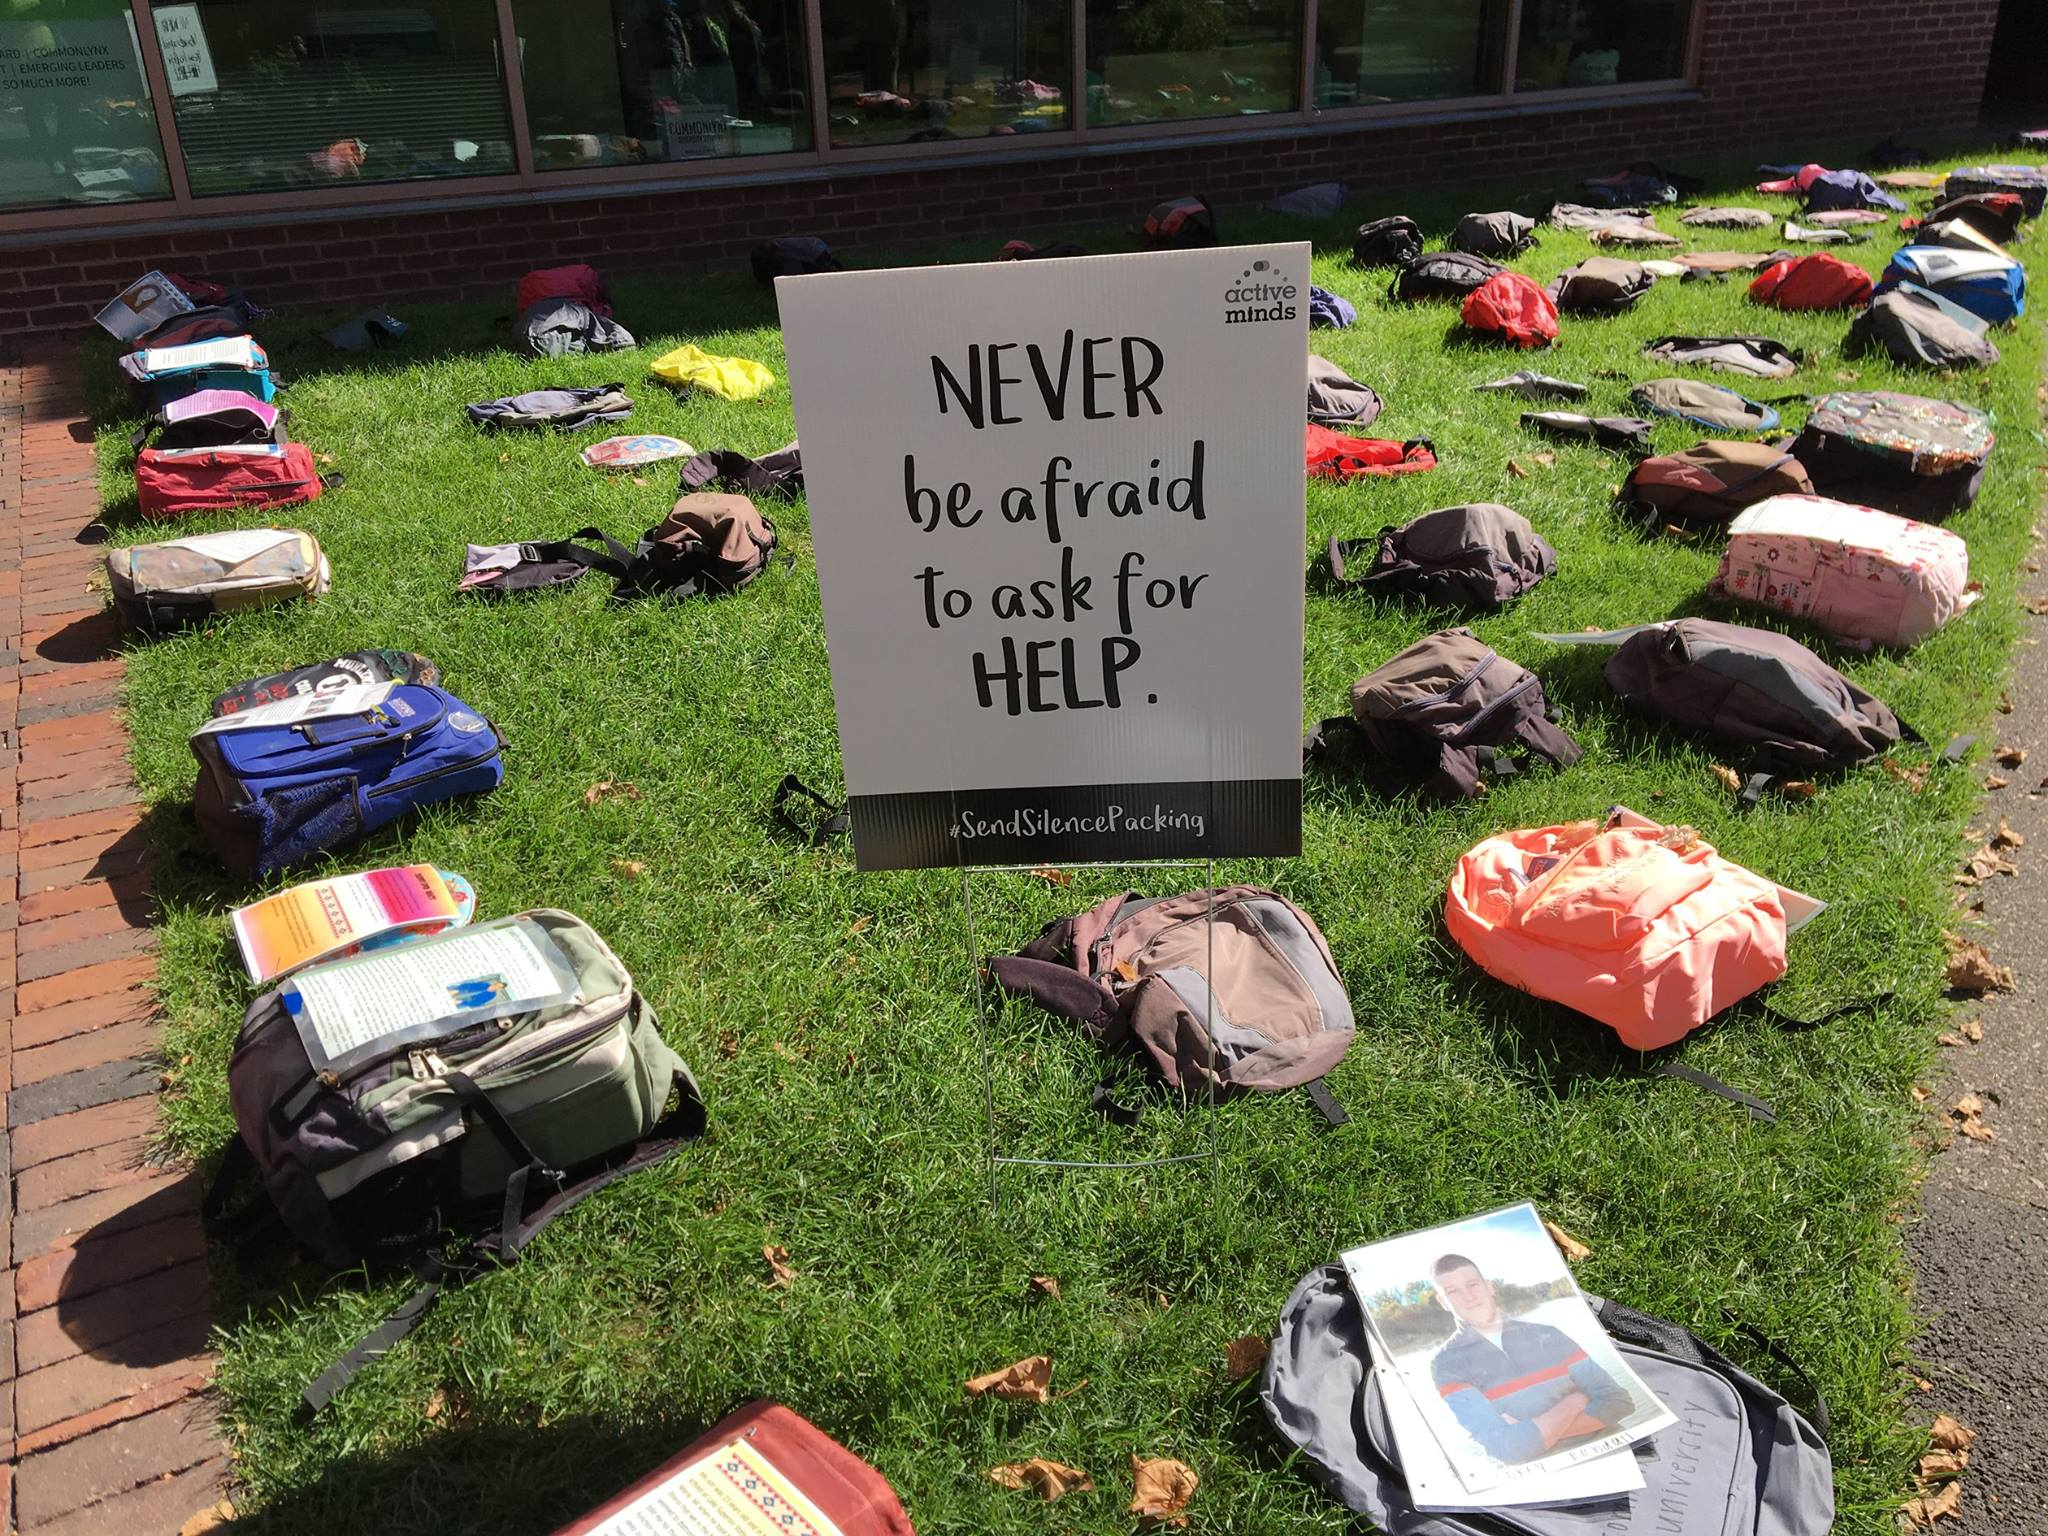 Backpacks on the grass of Doble Quad for Send Silence Packing event.